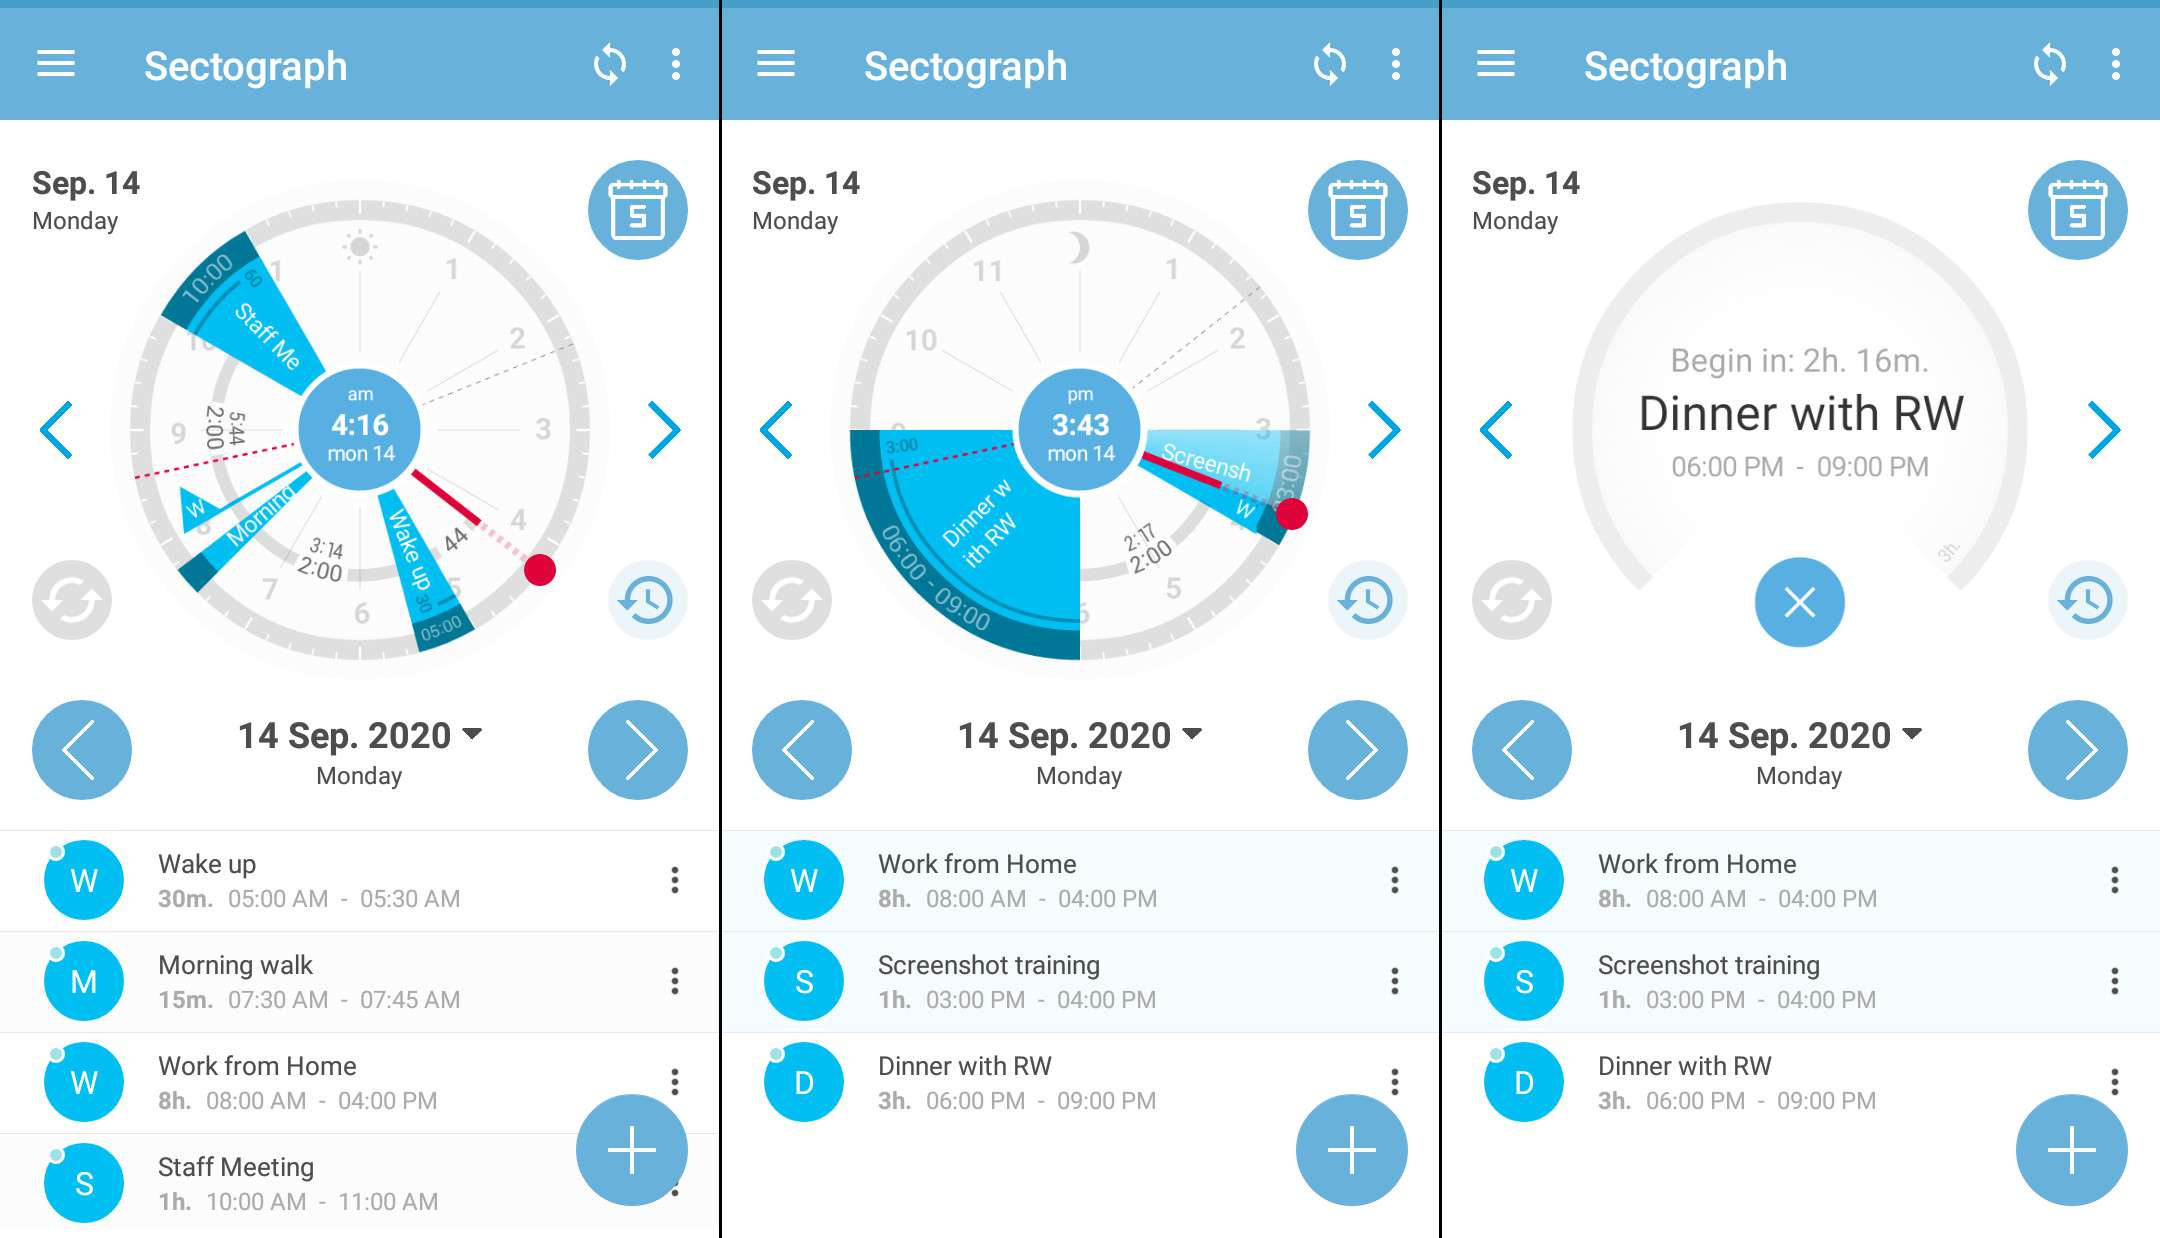 View calendar events visually with Sectograph